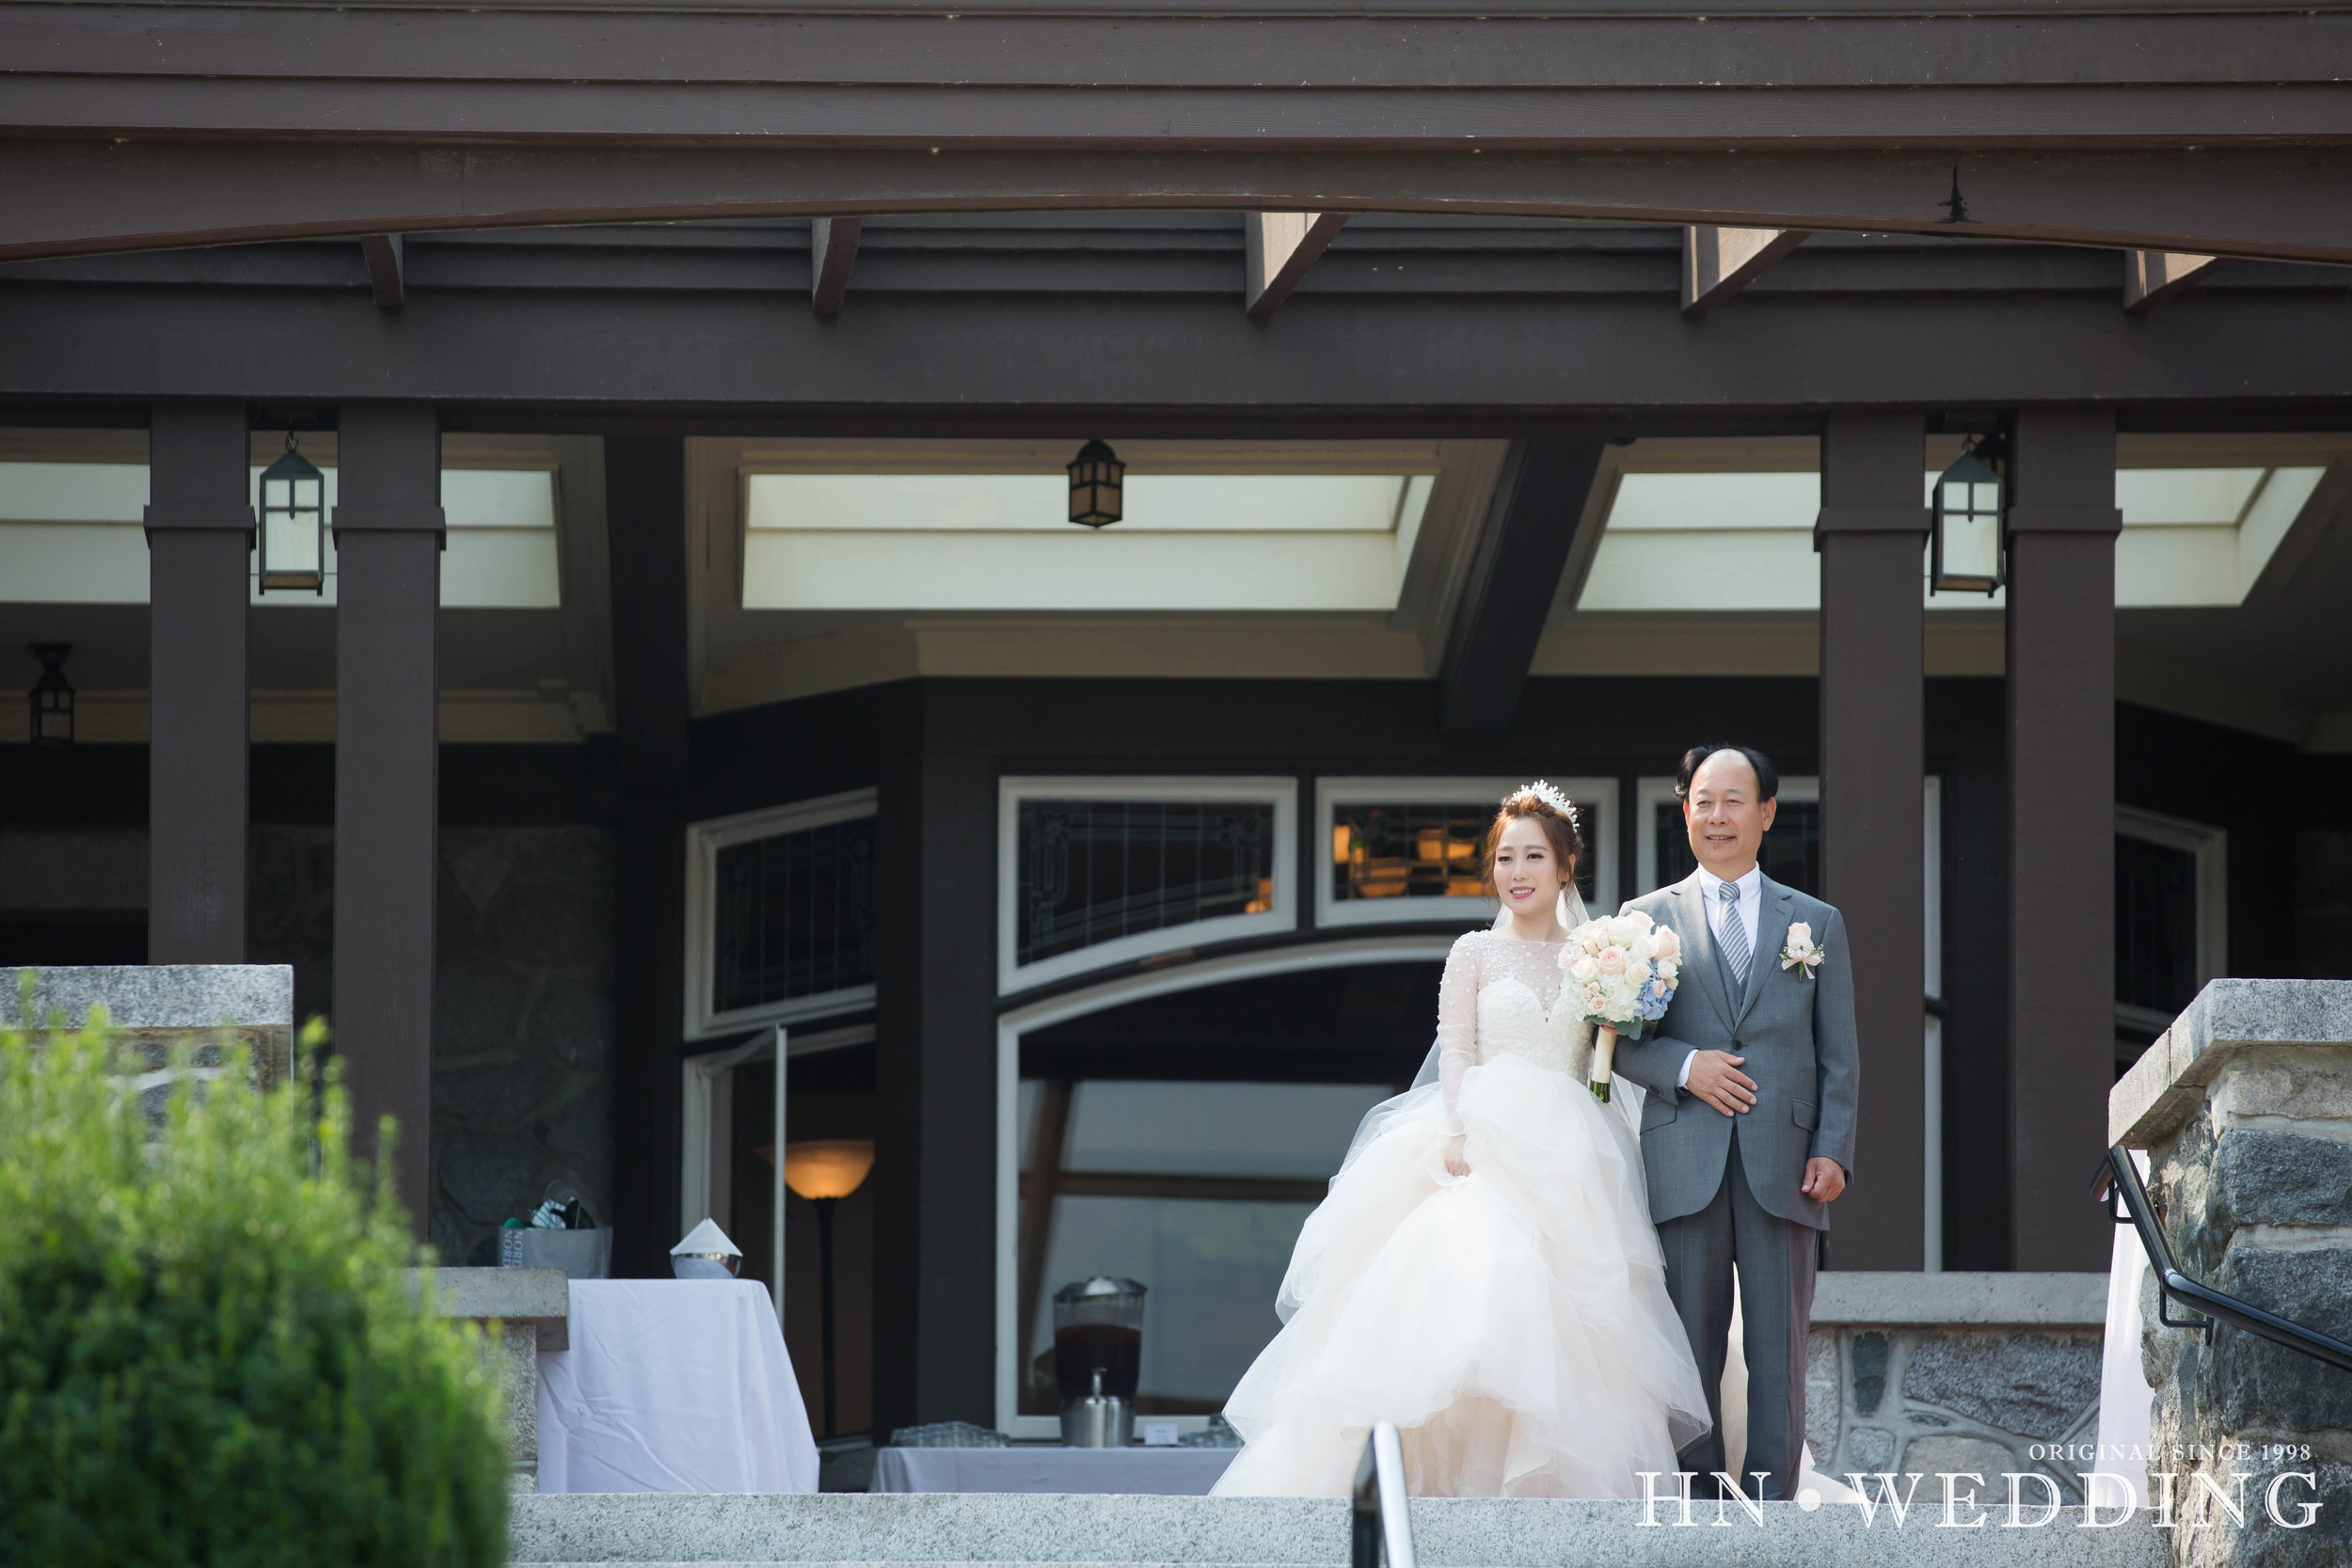 HNwedding20170811weddingday-40.jpg